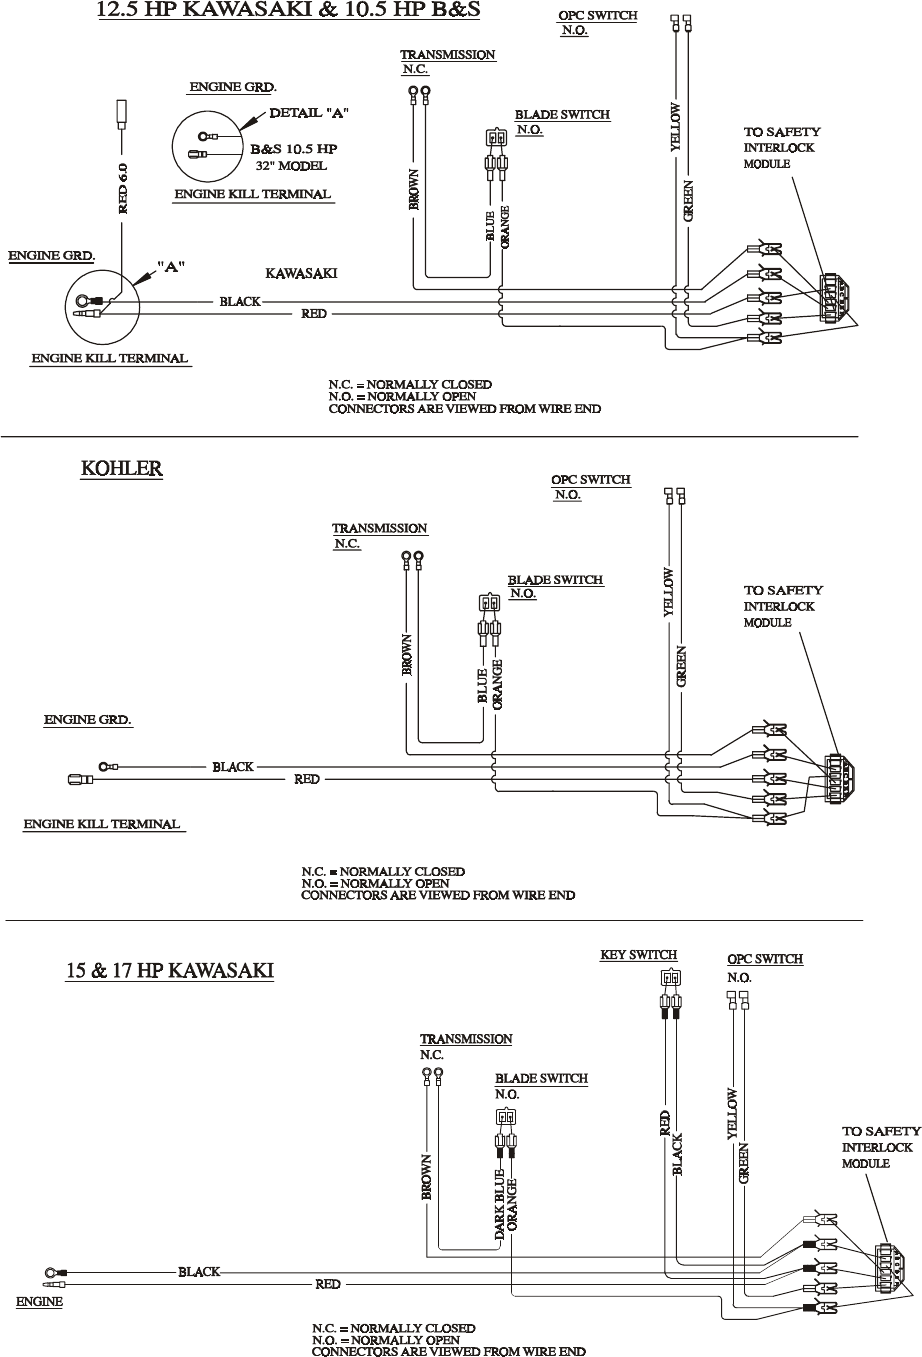 fa869892 6c99 4c24 afcd a612459af1d0 bg27 page 39 of exmark lawn mower metro user guide manualsonline com exmark wiring diagram at love-stories.co